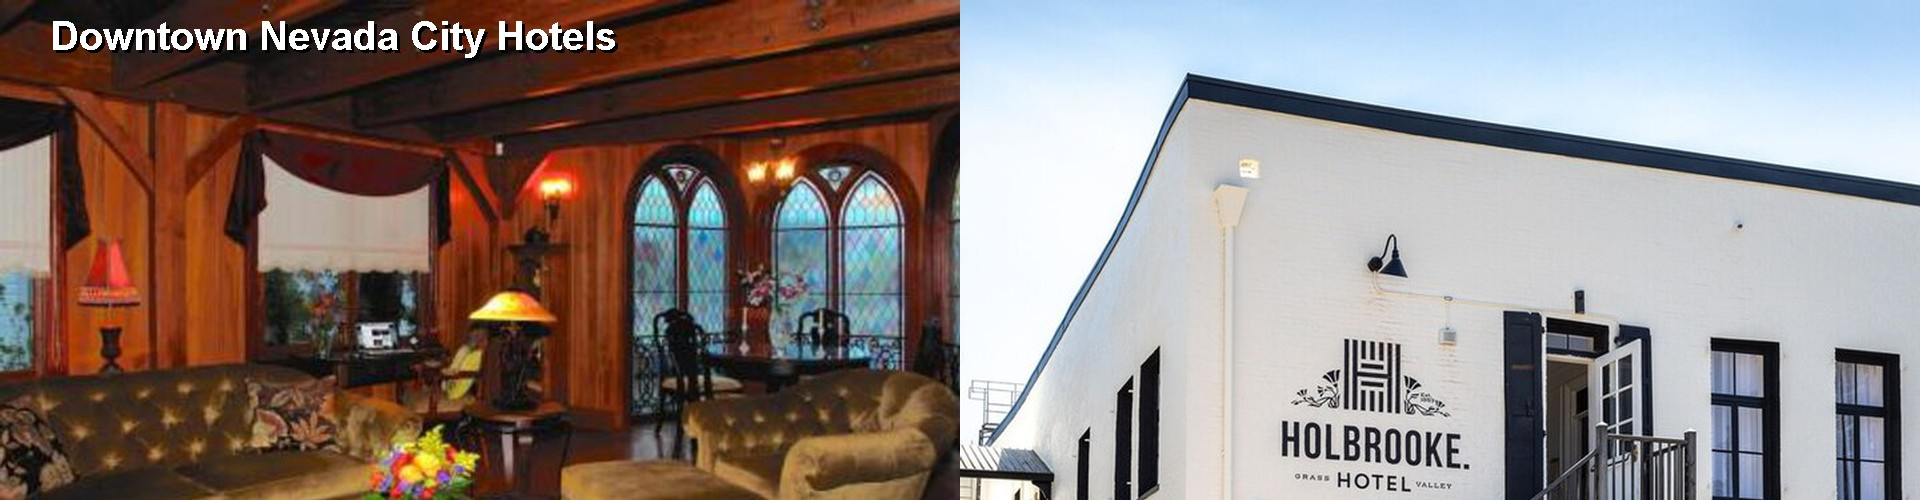 4 Best Hotels near Downtown Nevada City